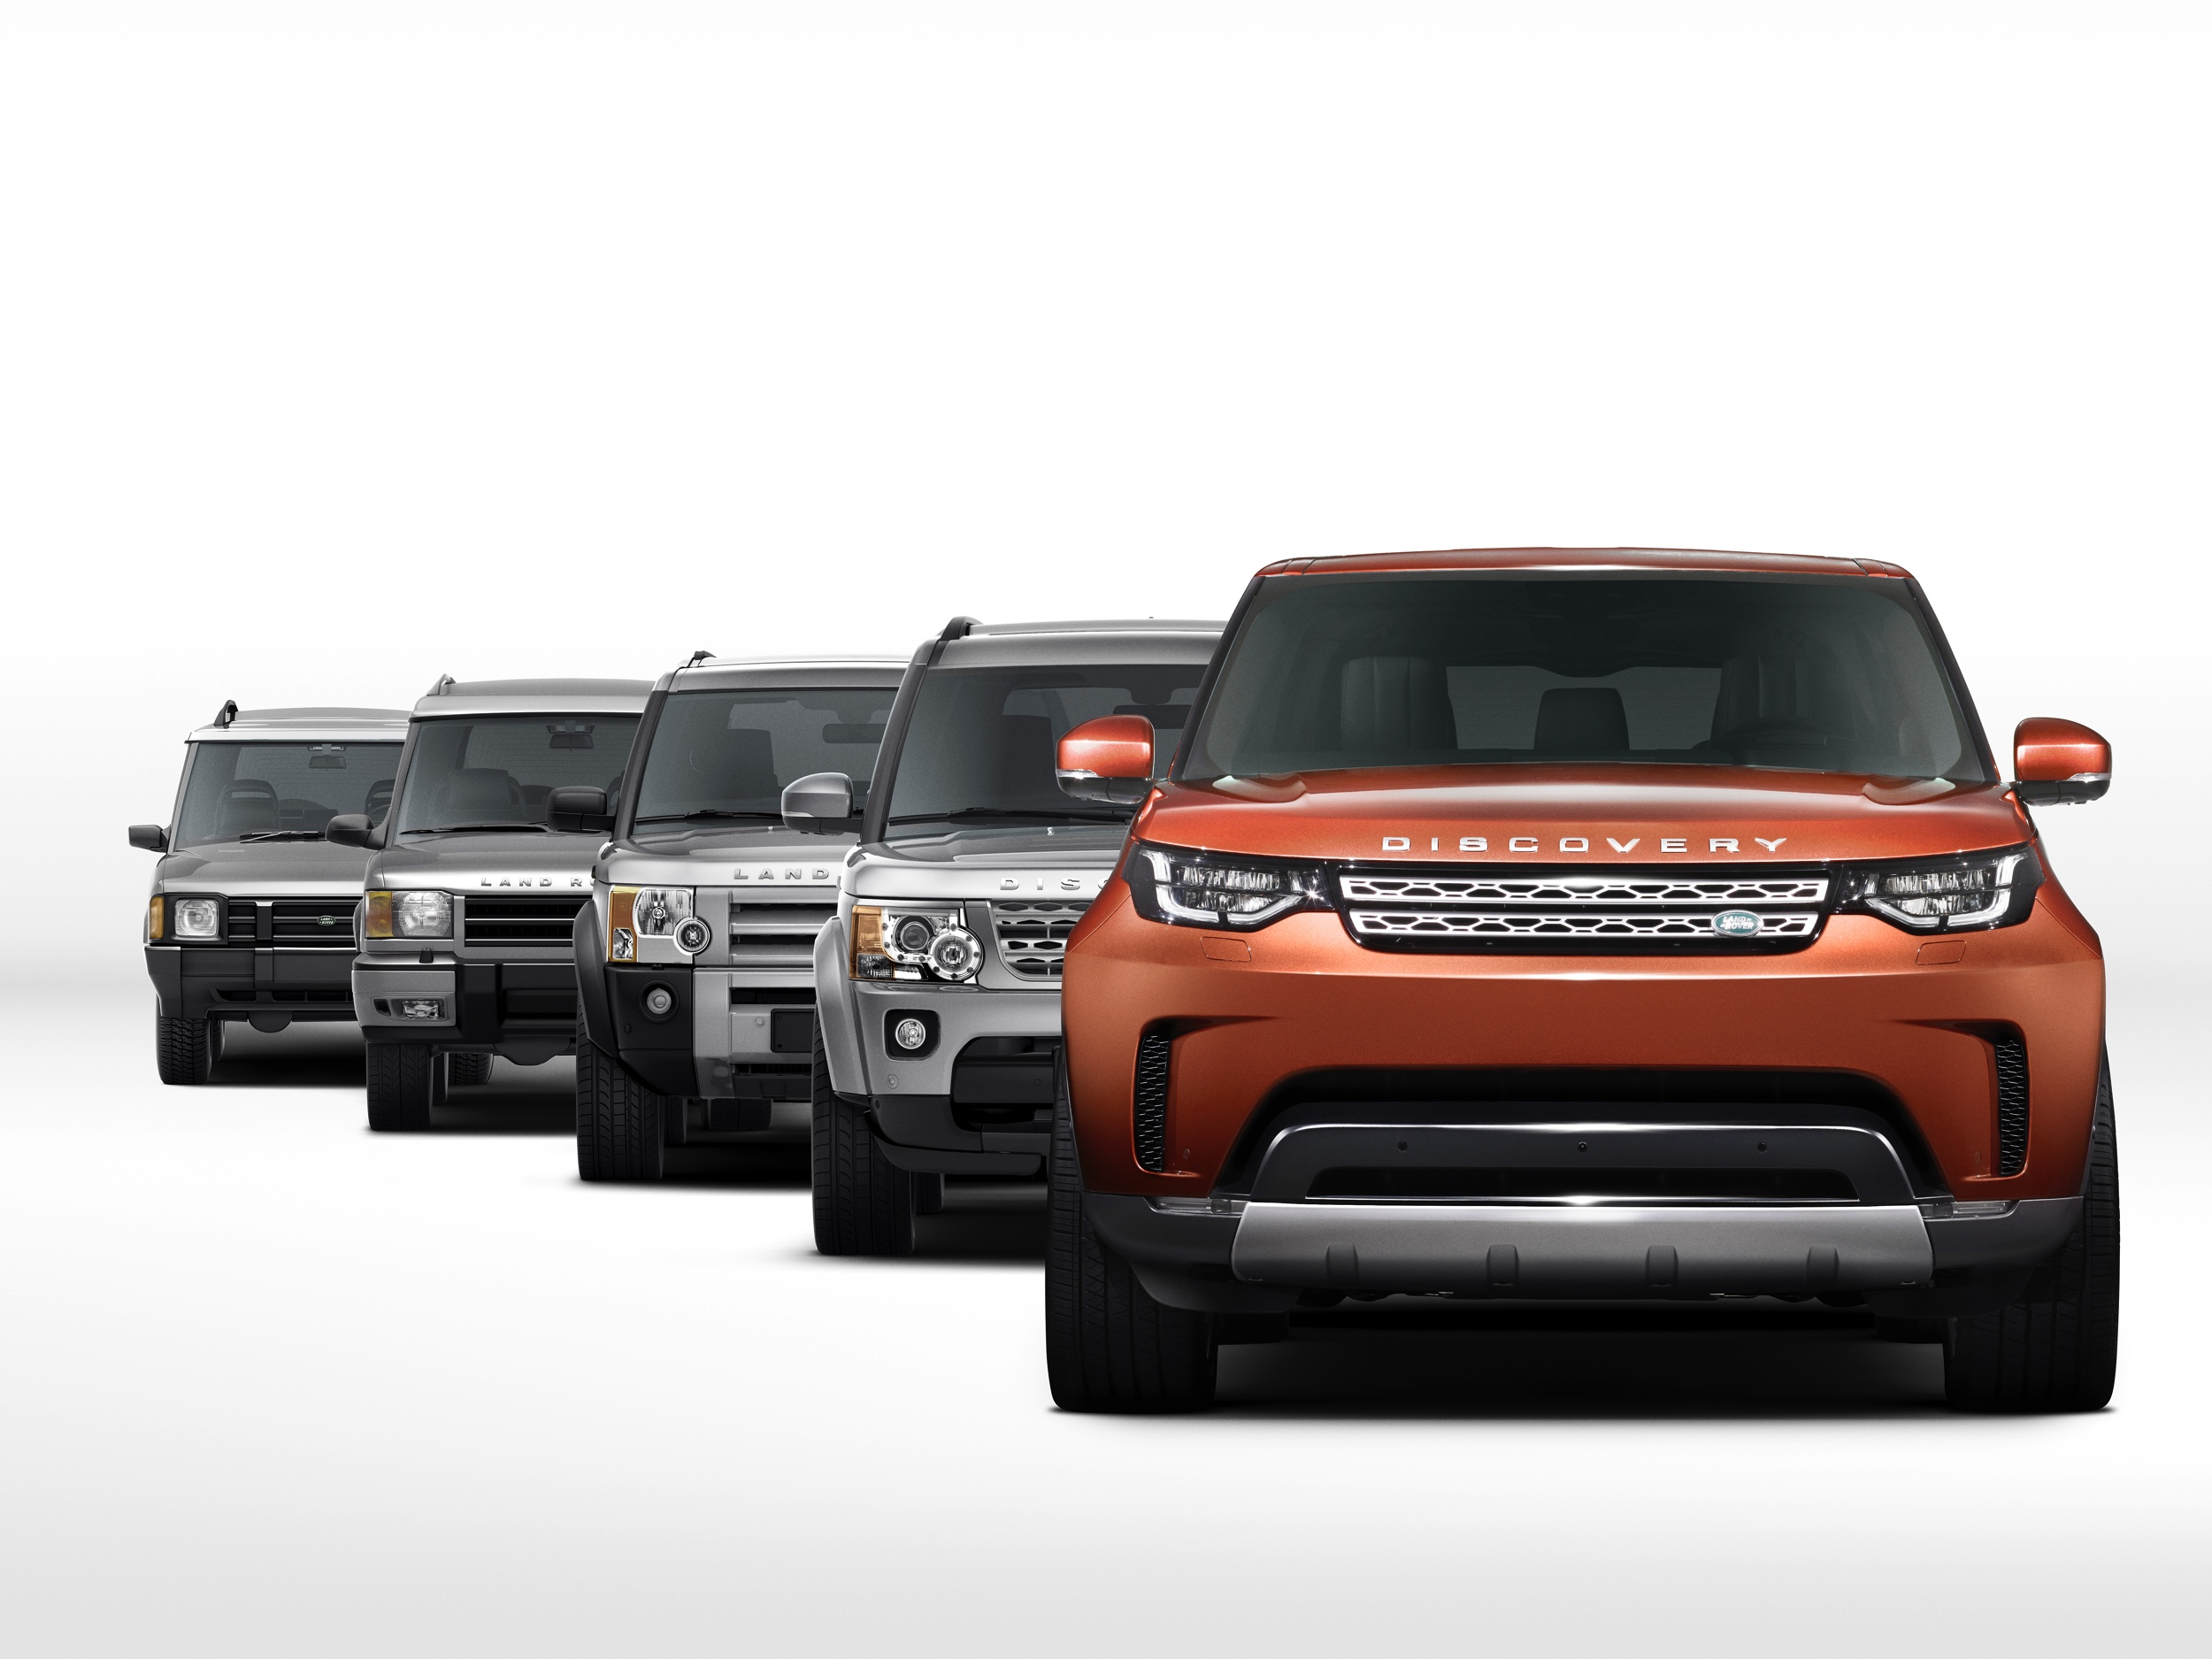 Land Rover Discovery -2- Autovisie.nl